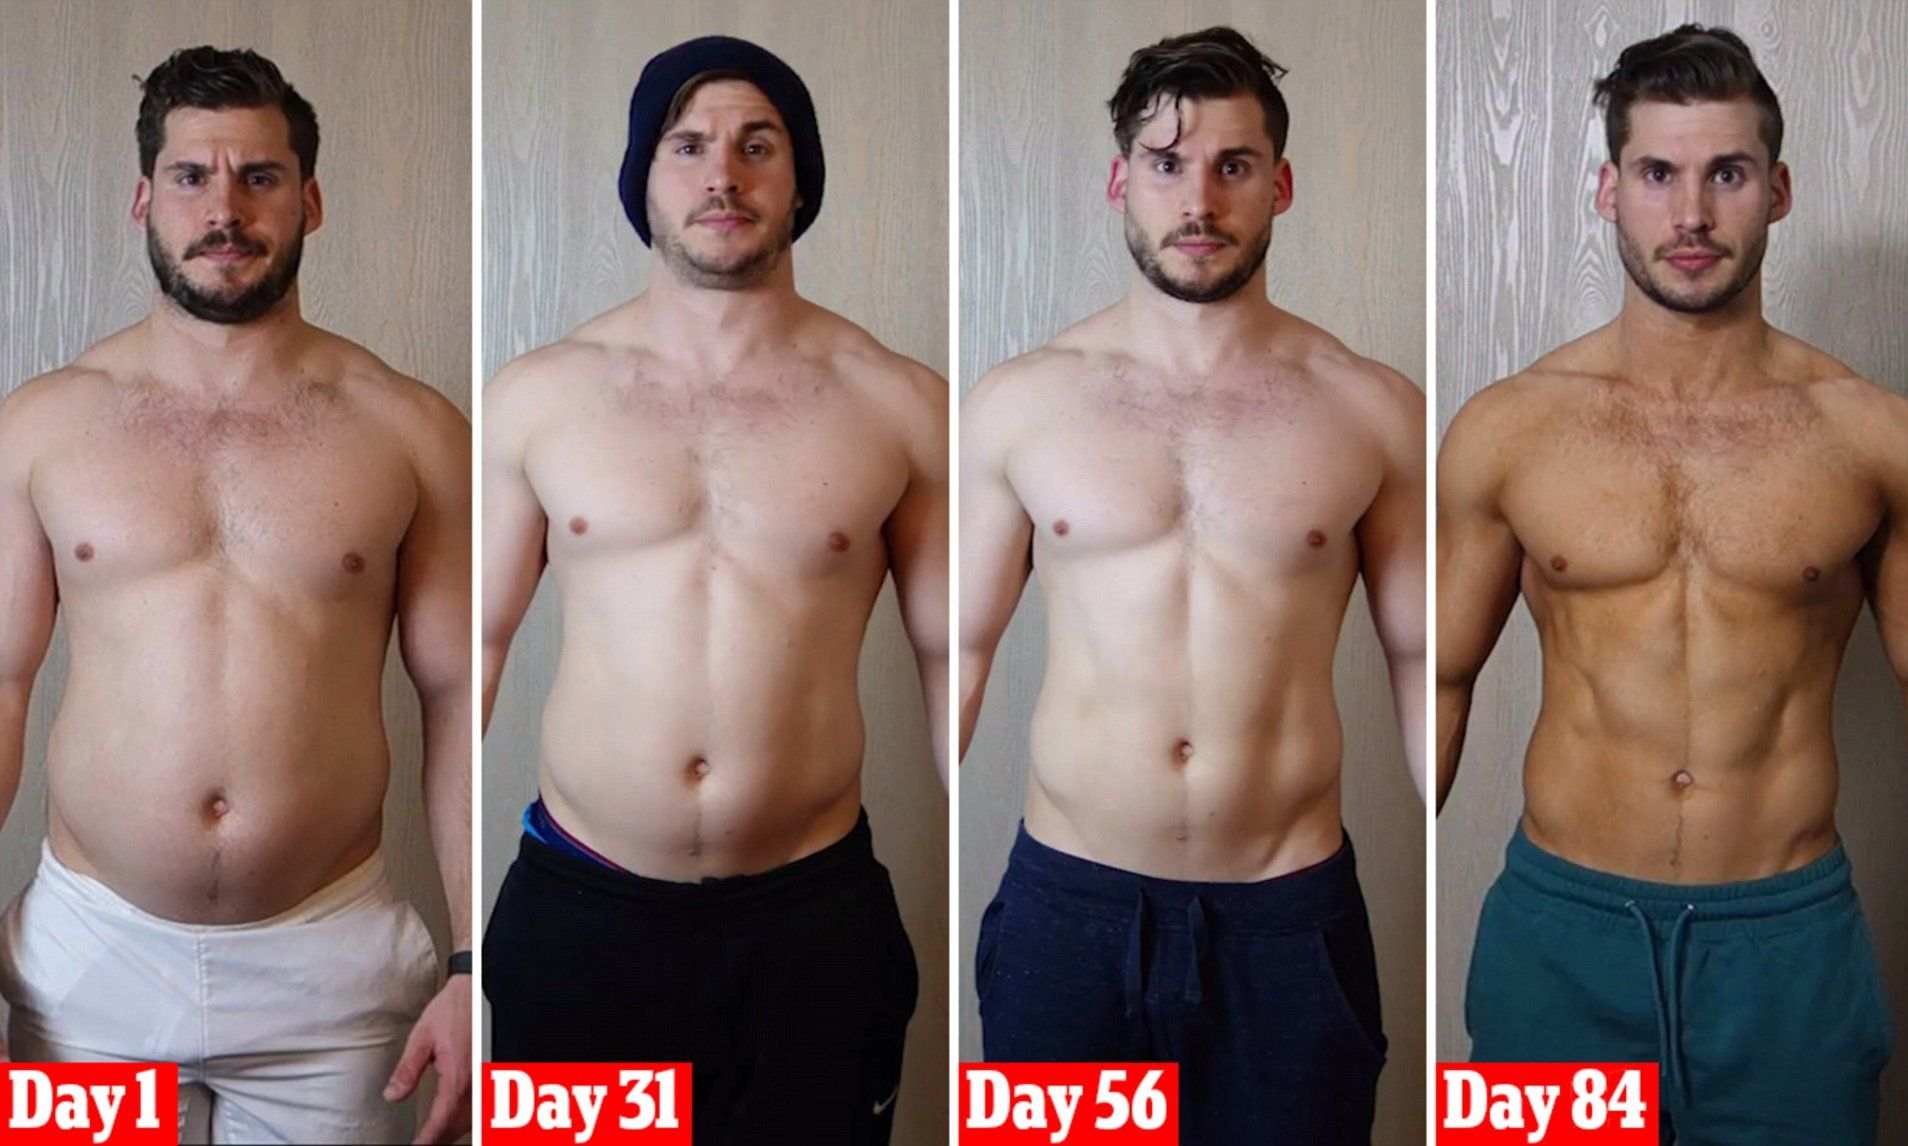 Man Shows Off 12 Week Body Transformation In Amazing Time Lapse Video Body Transformation Men 12 Week Body Transformation Transformation Body